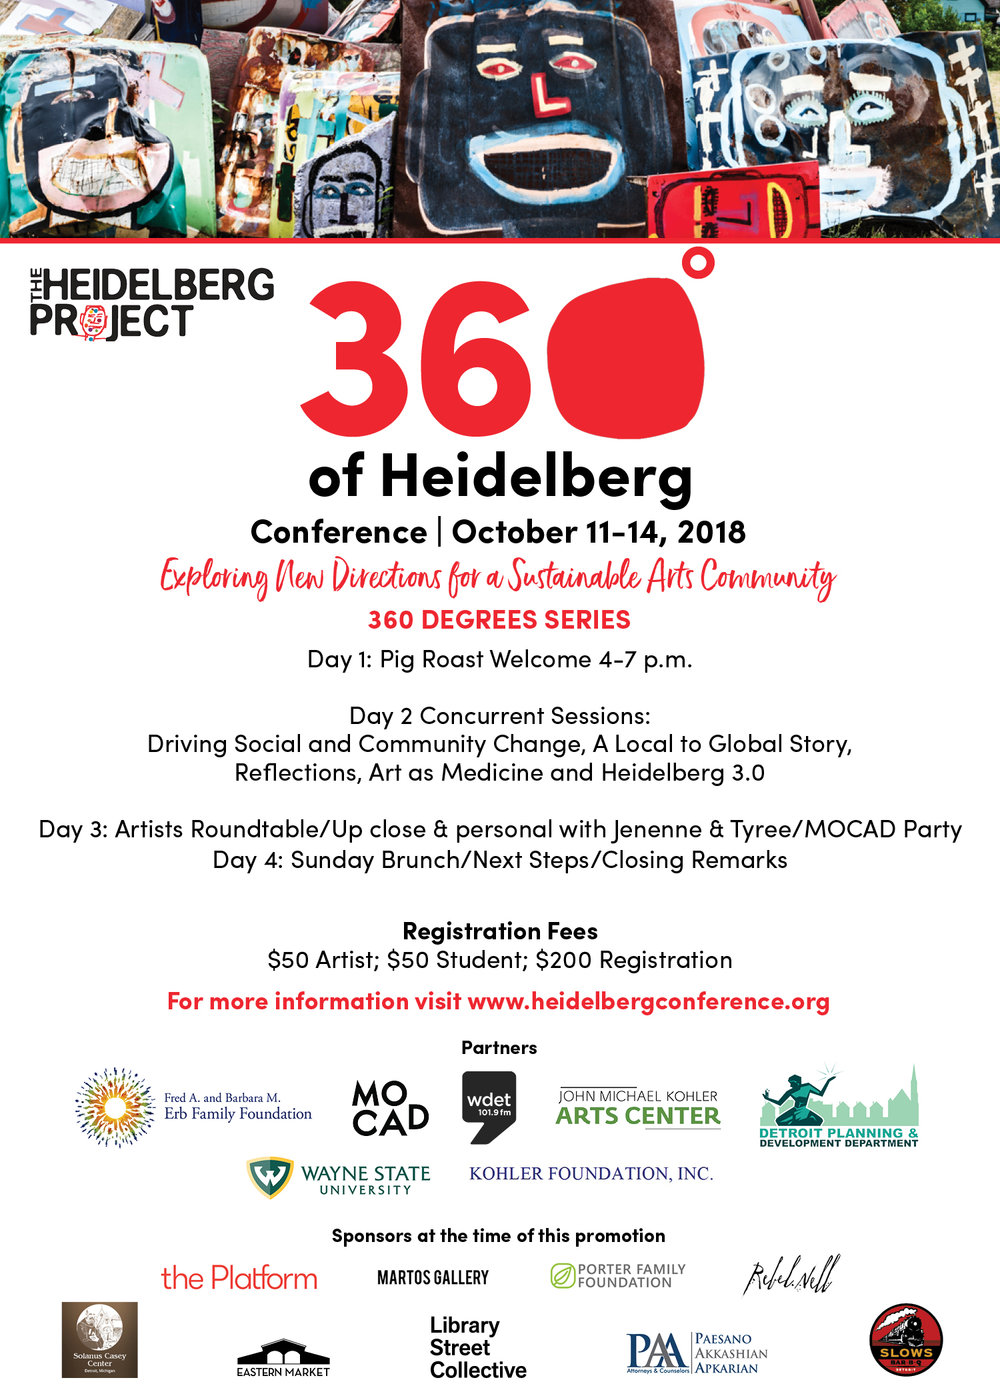 2018_heidelberg360_save_the_date_sponsors.jpg